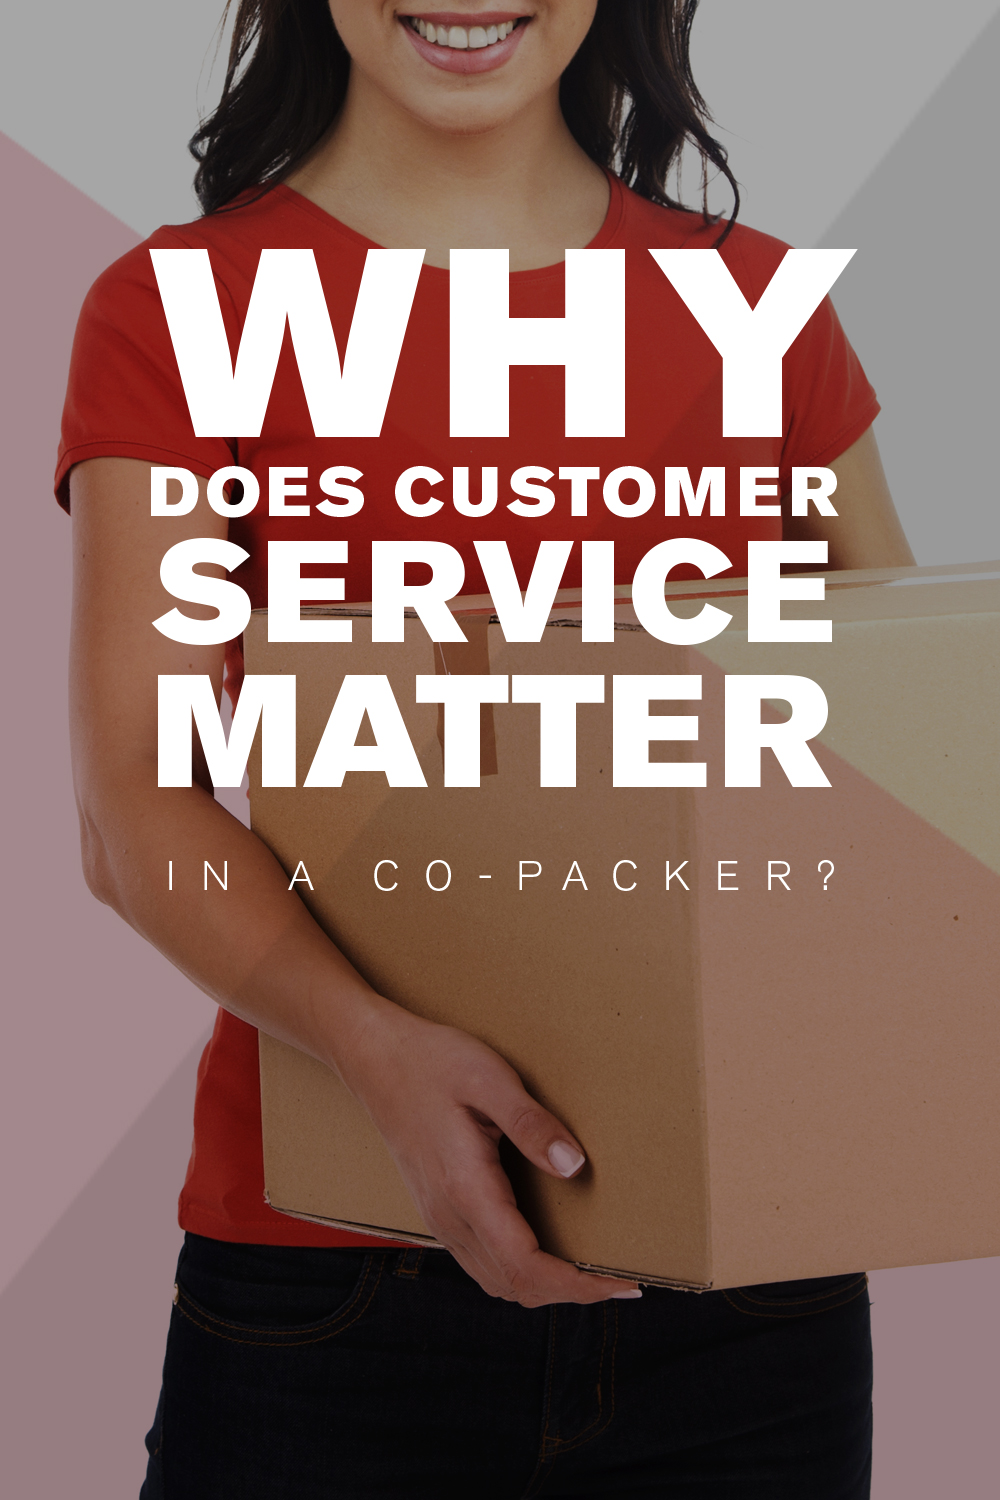 Why Does Customer Service Matter In A Copacker